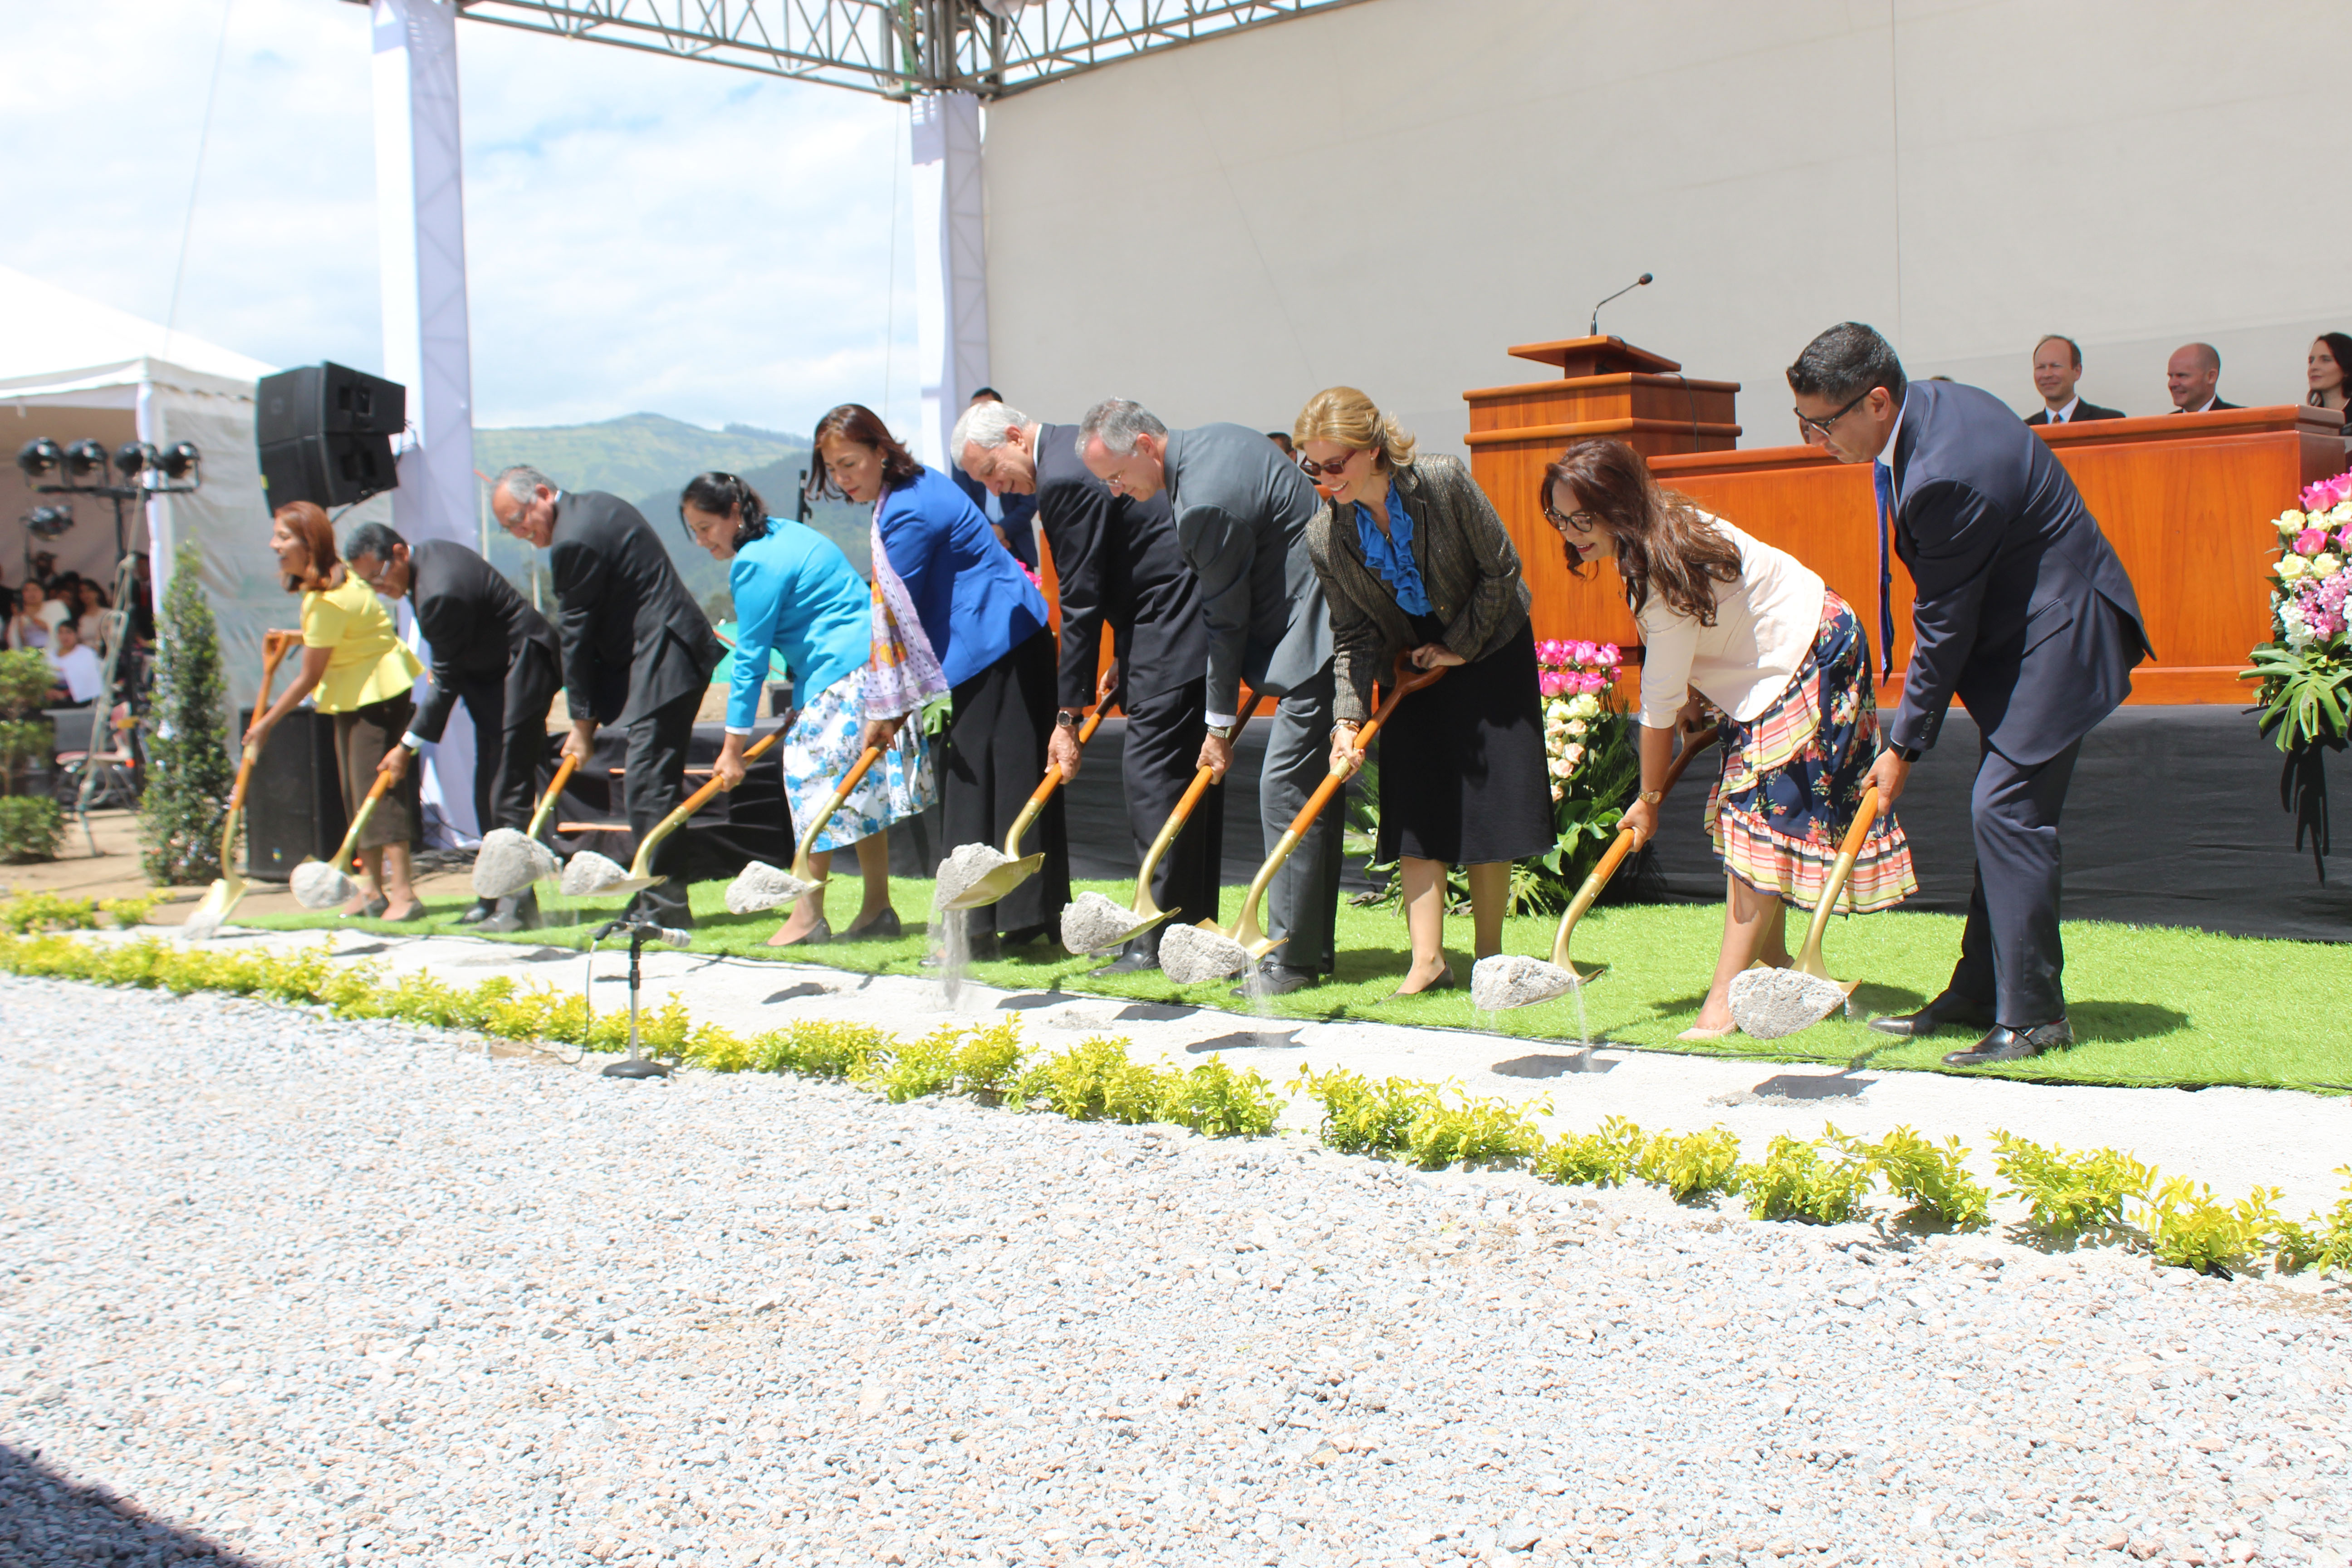 Church and community leaders turn the earth during the Quito Ecuador Temple groundbreaking on Saturday, May 11, 2019.